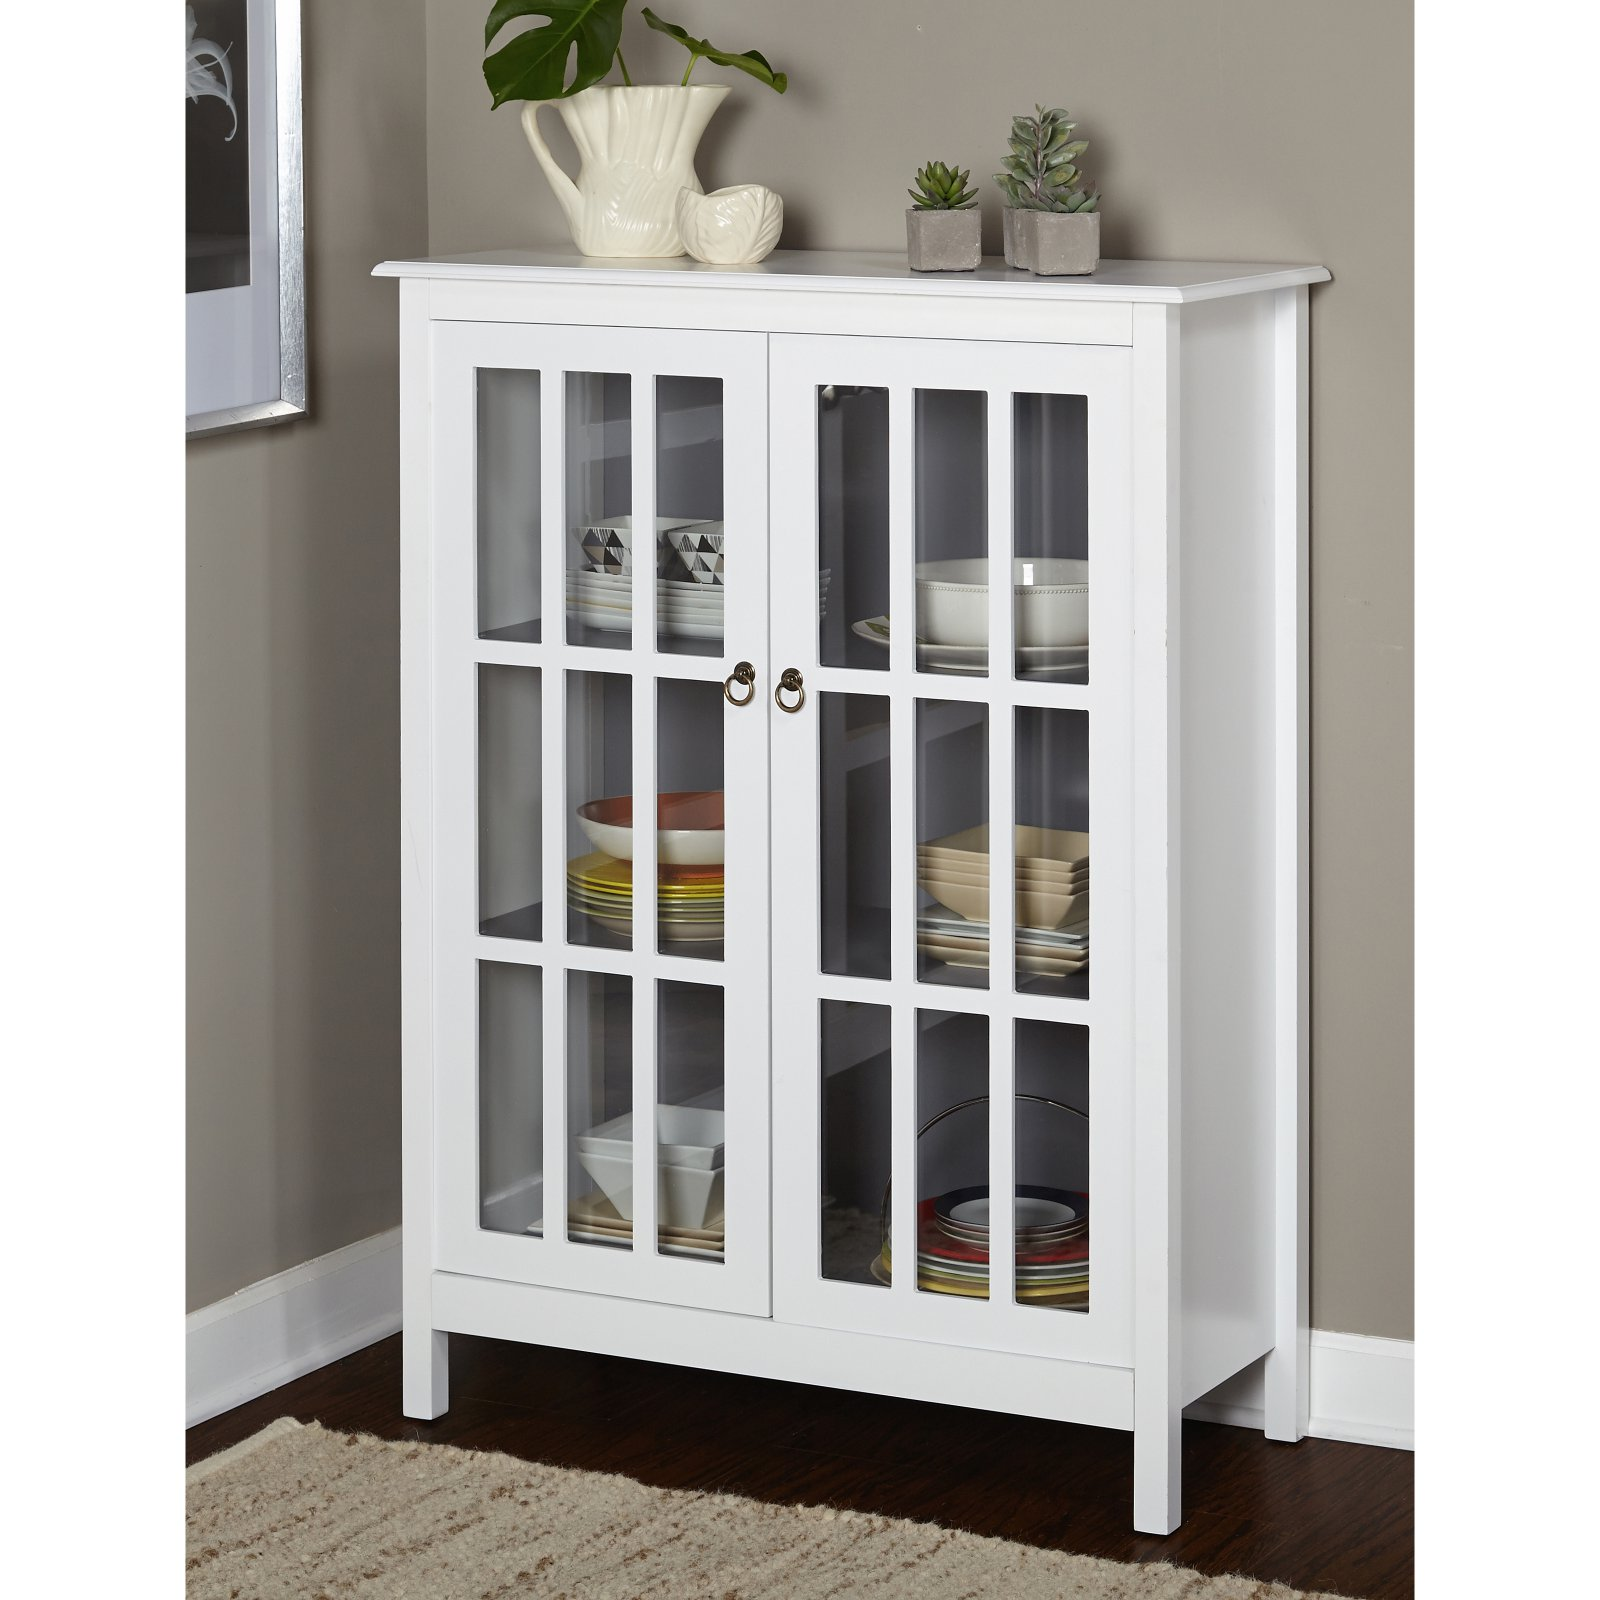 Portland Tall Cabinet, White/Grey